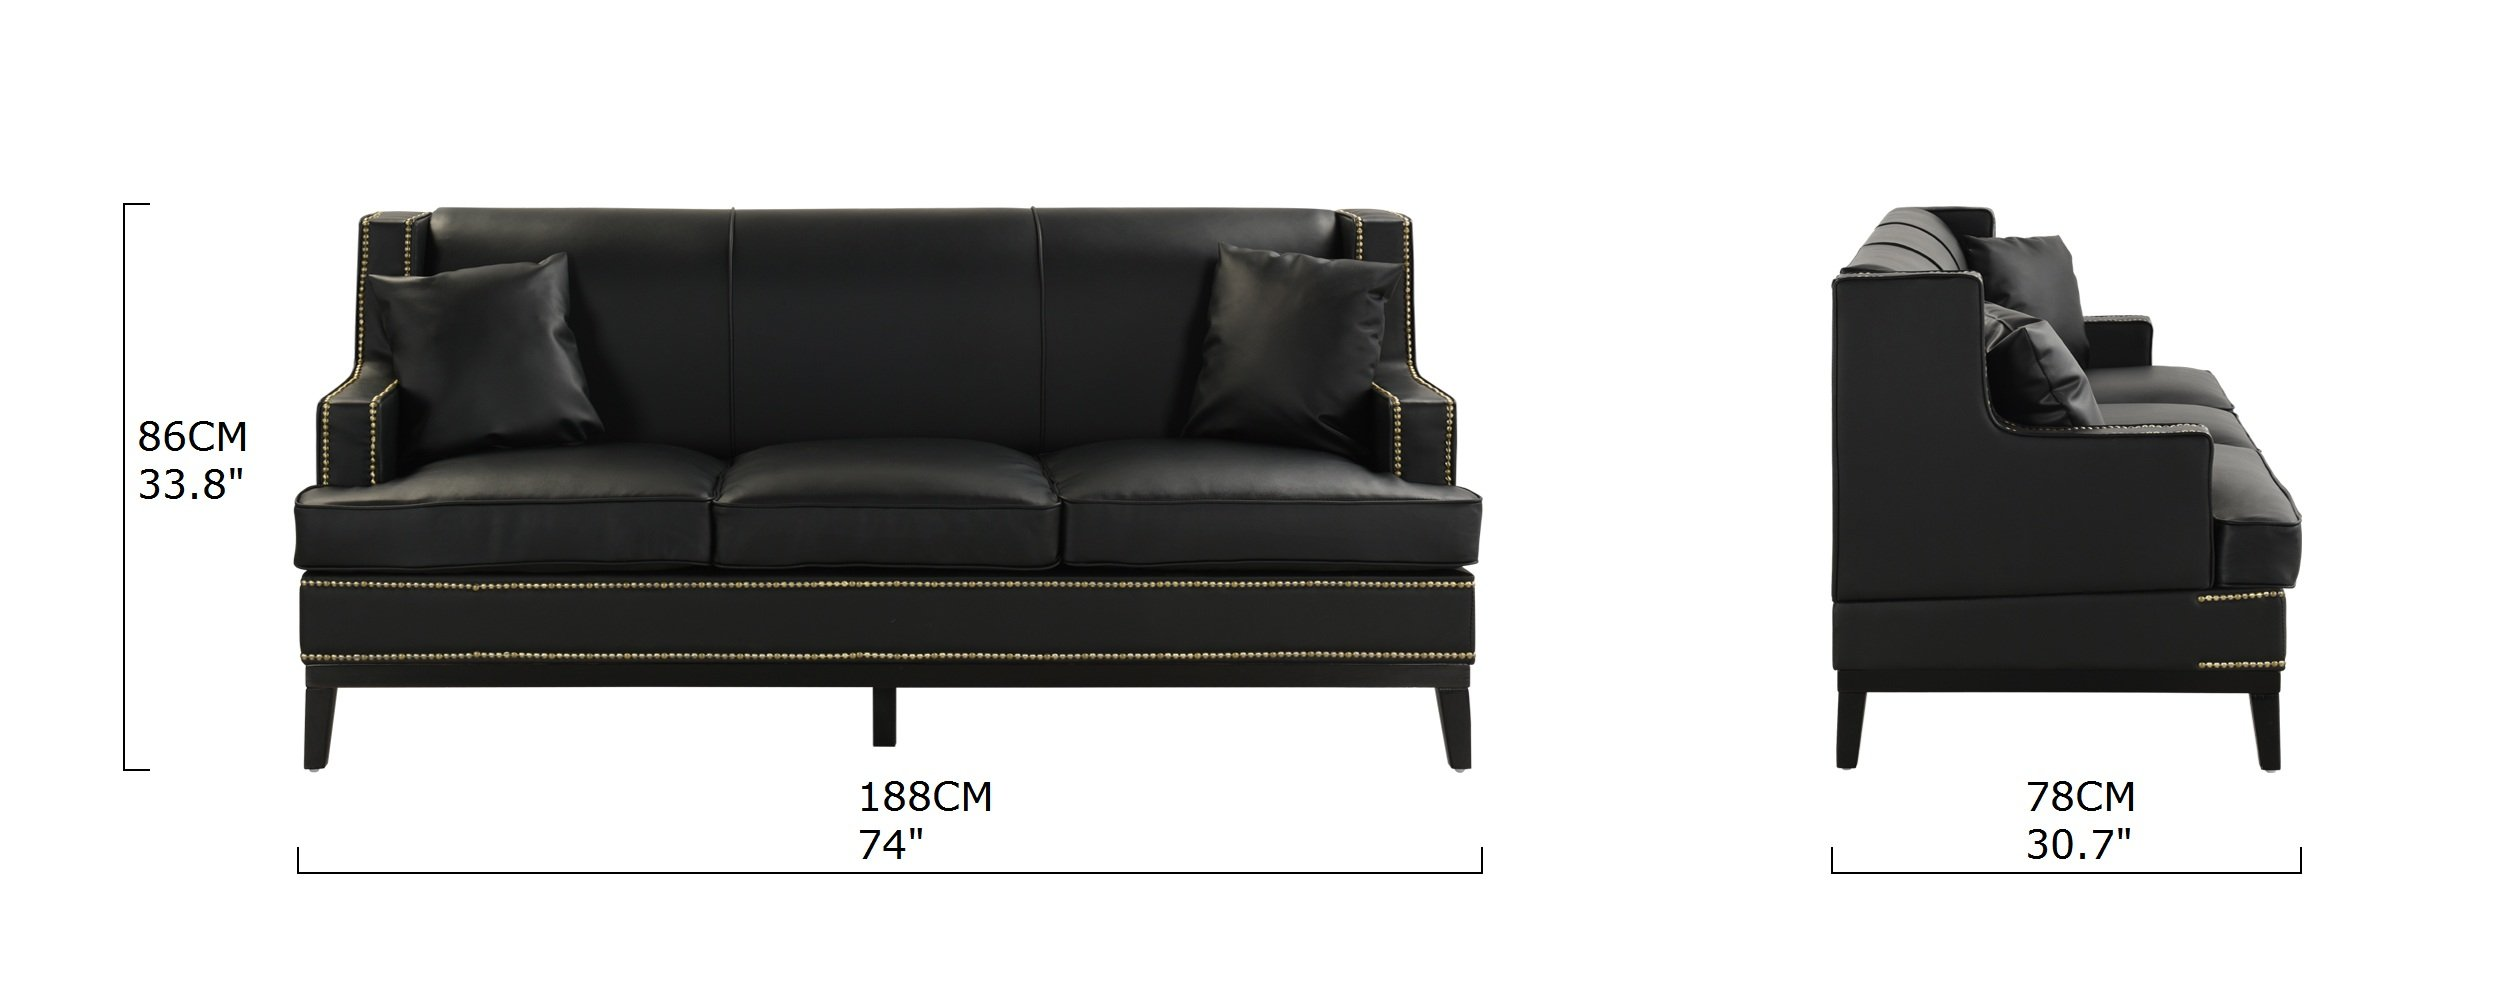 Black Modern Bonded Leather Sofa With Nailhead Trim Detail 2 Accent Pillows